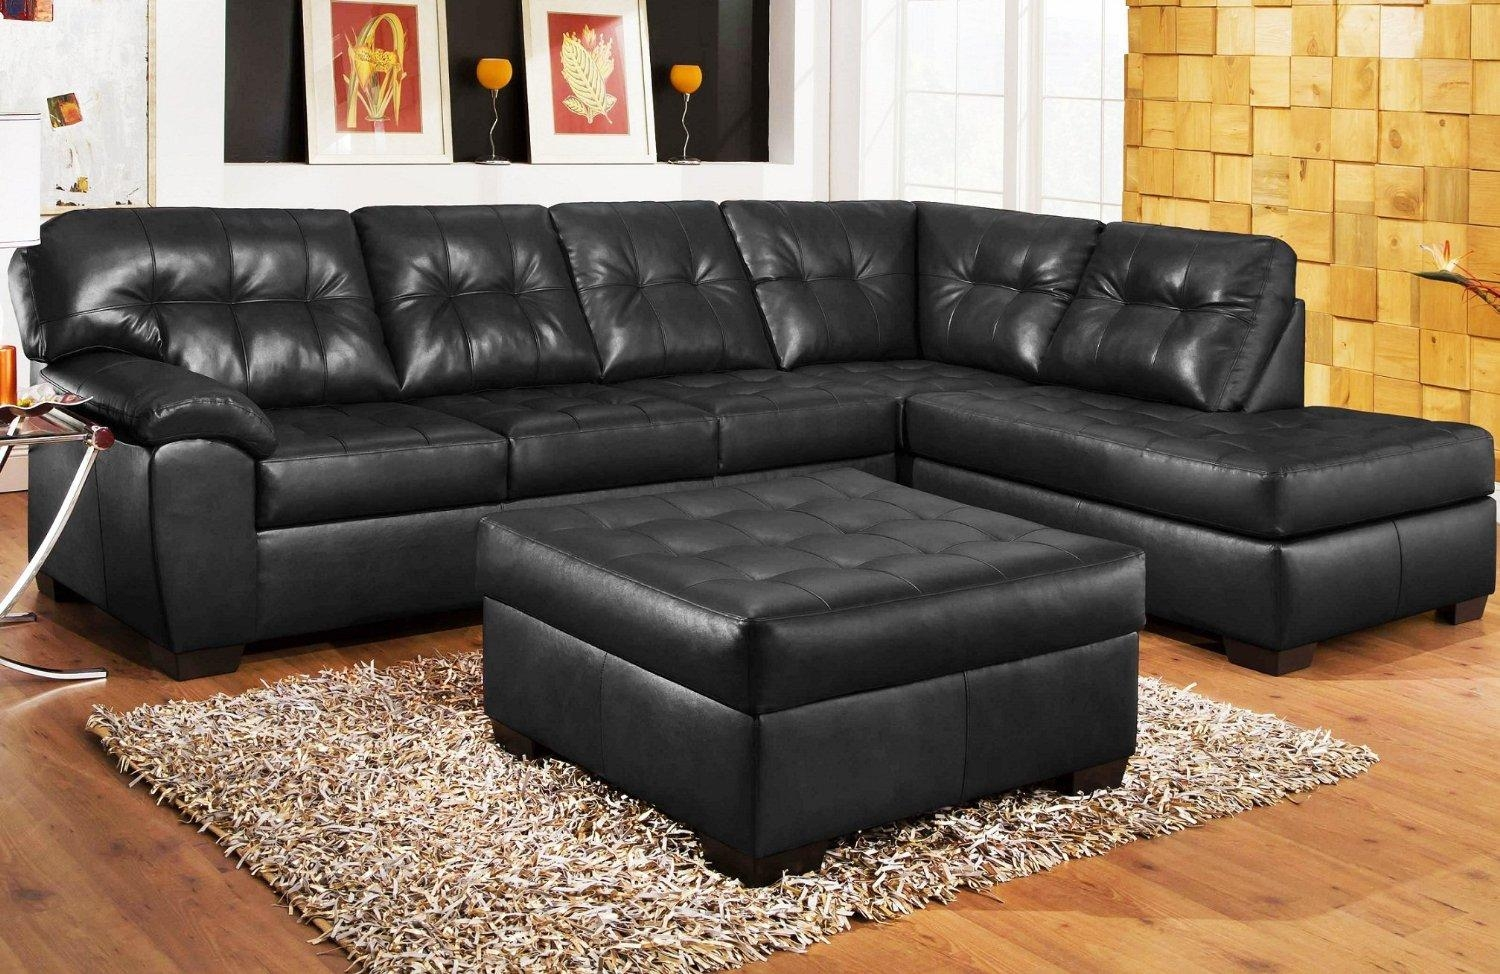 Living Room Ideas With Black Leather Sofa Modern Black Leather With Small Black Sofas (Image 6 of 20)